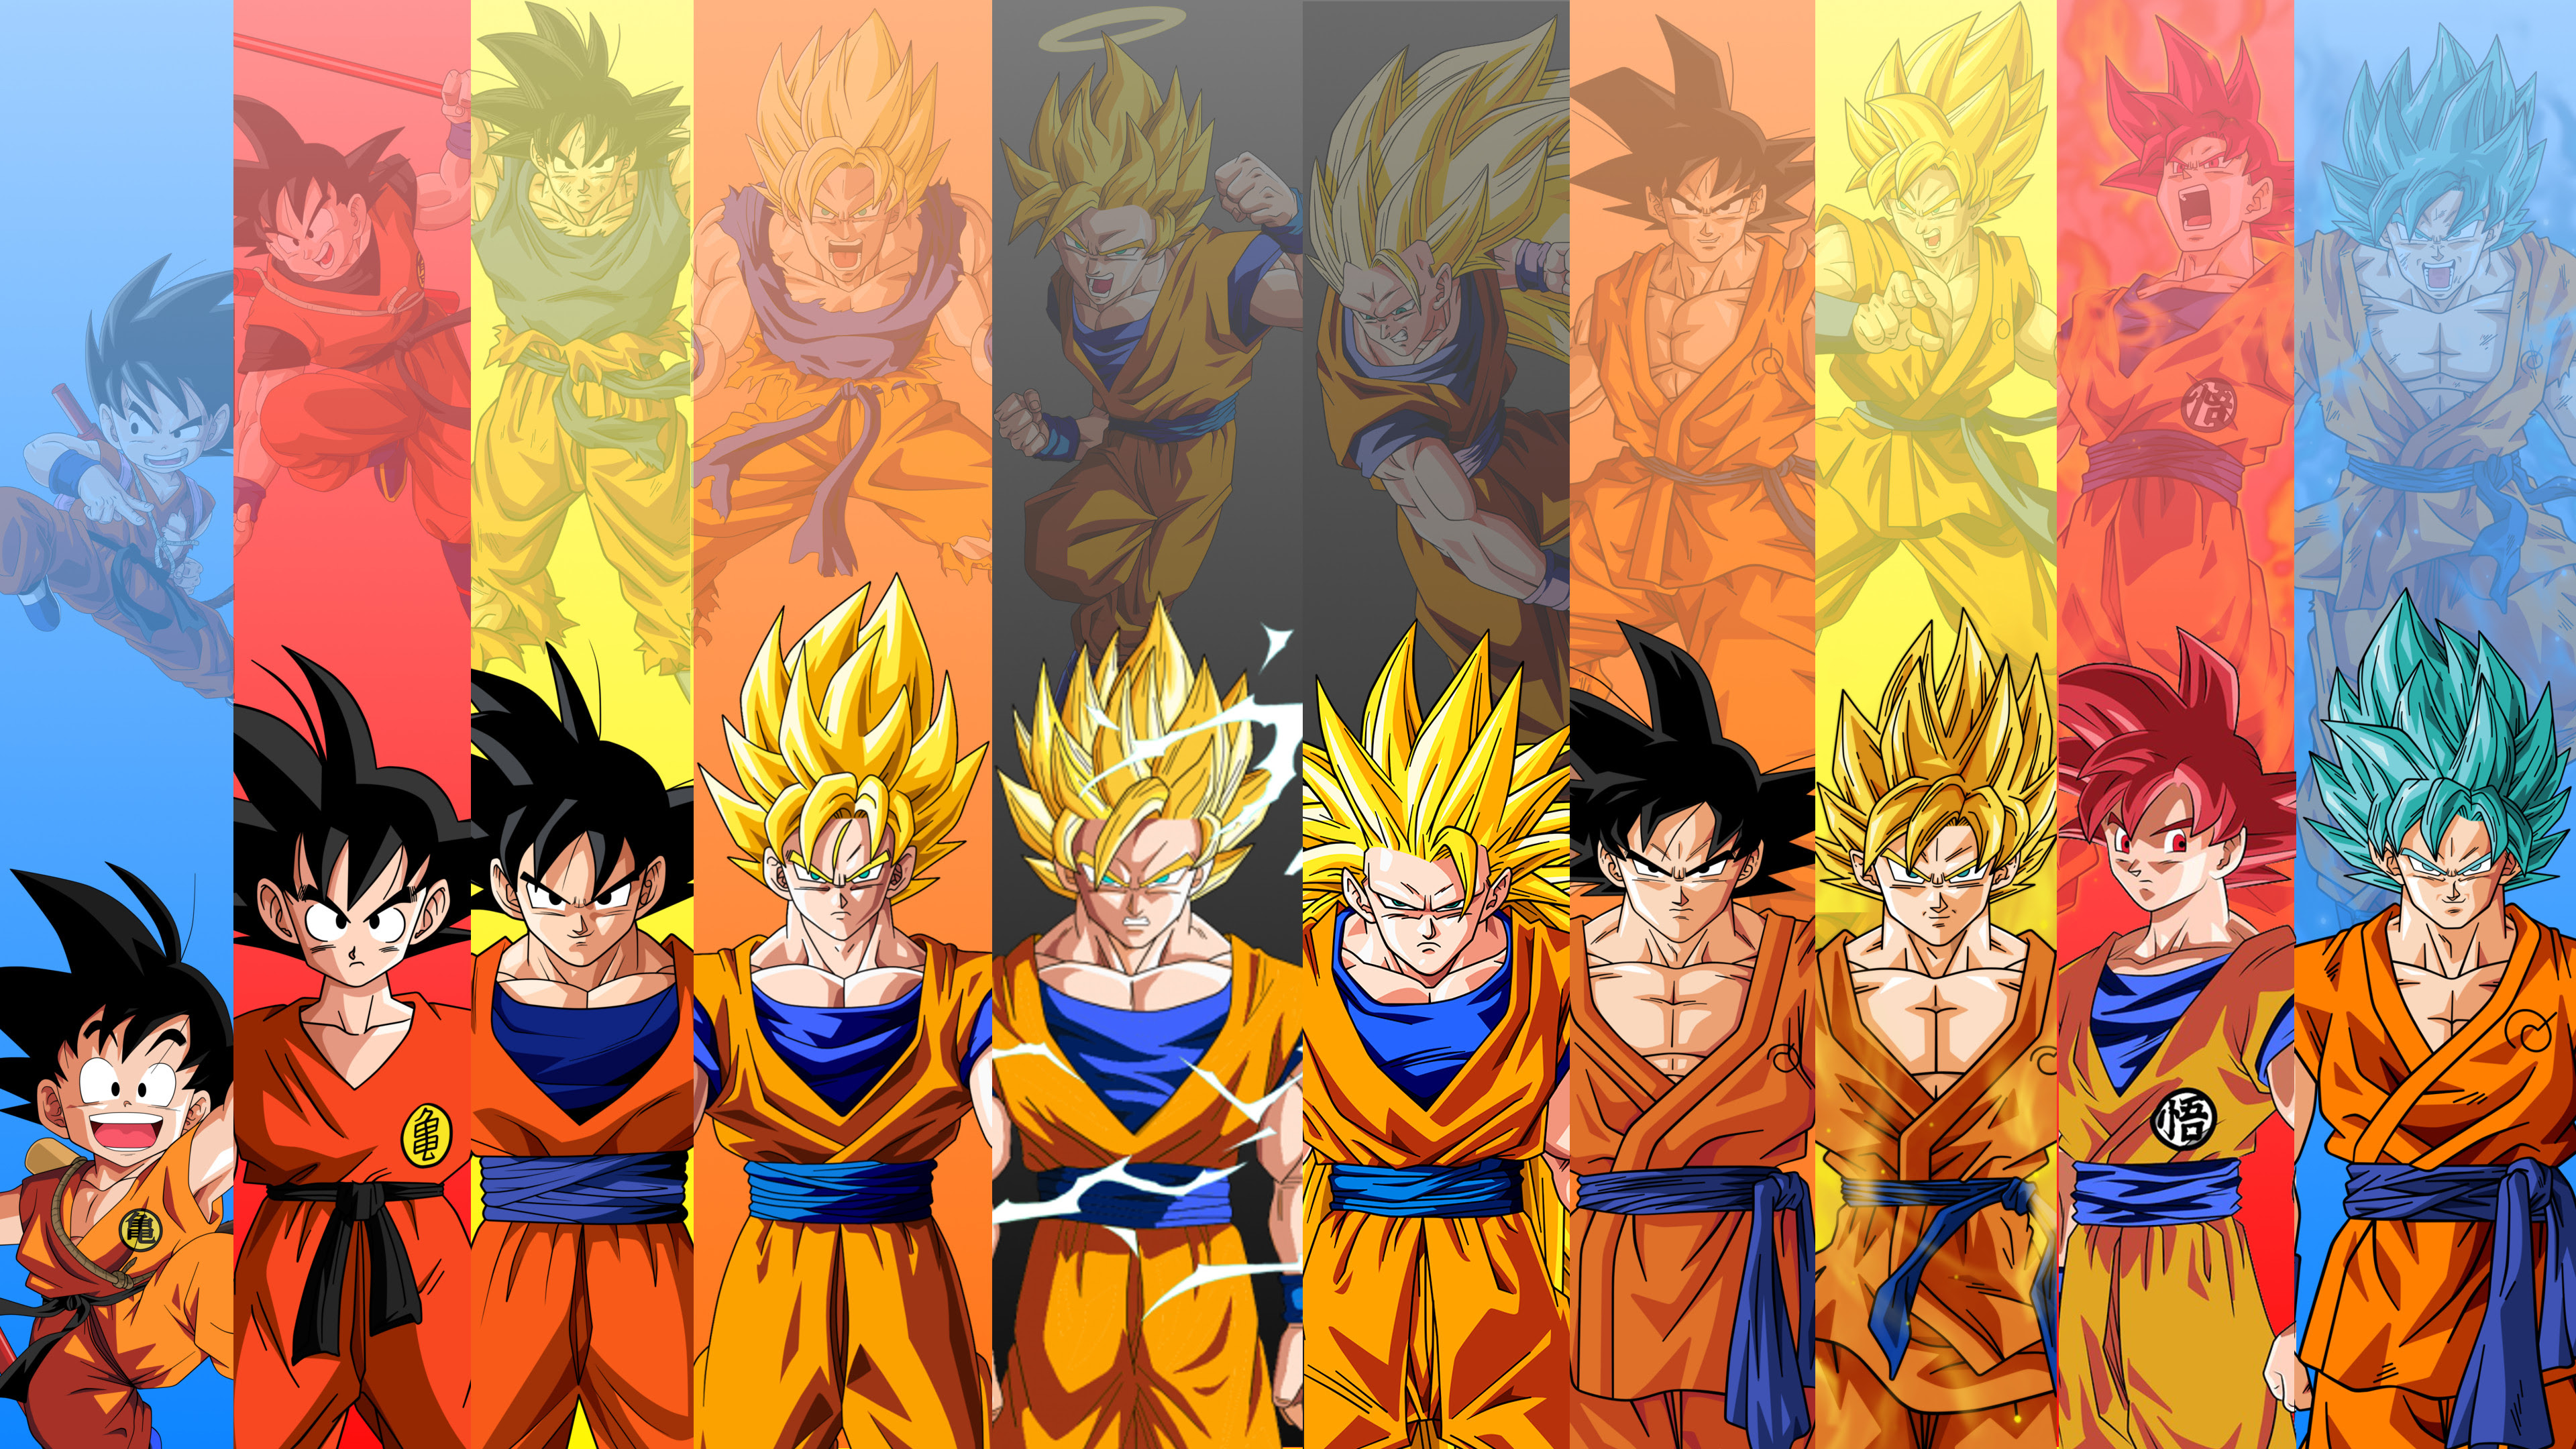 Just Made This 4k Wallpaper Featuring 10 Forms Of Goku From Db